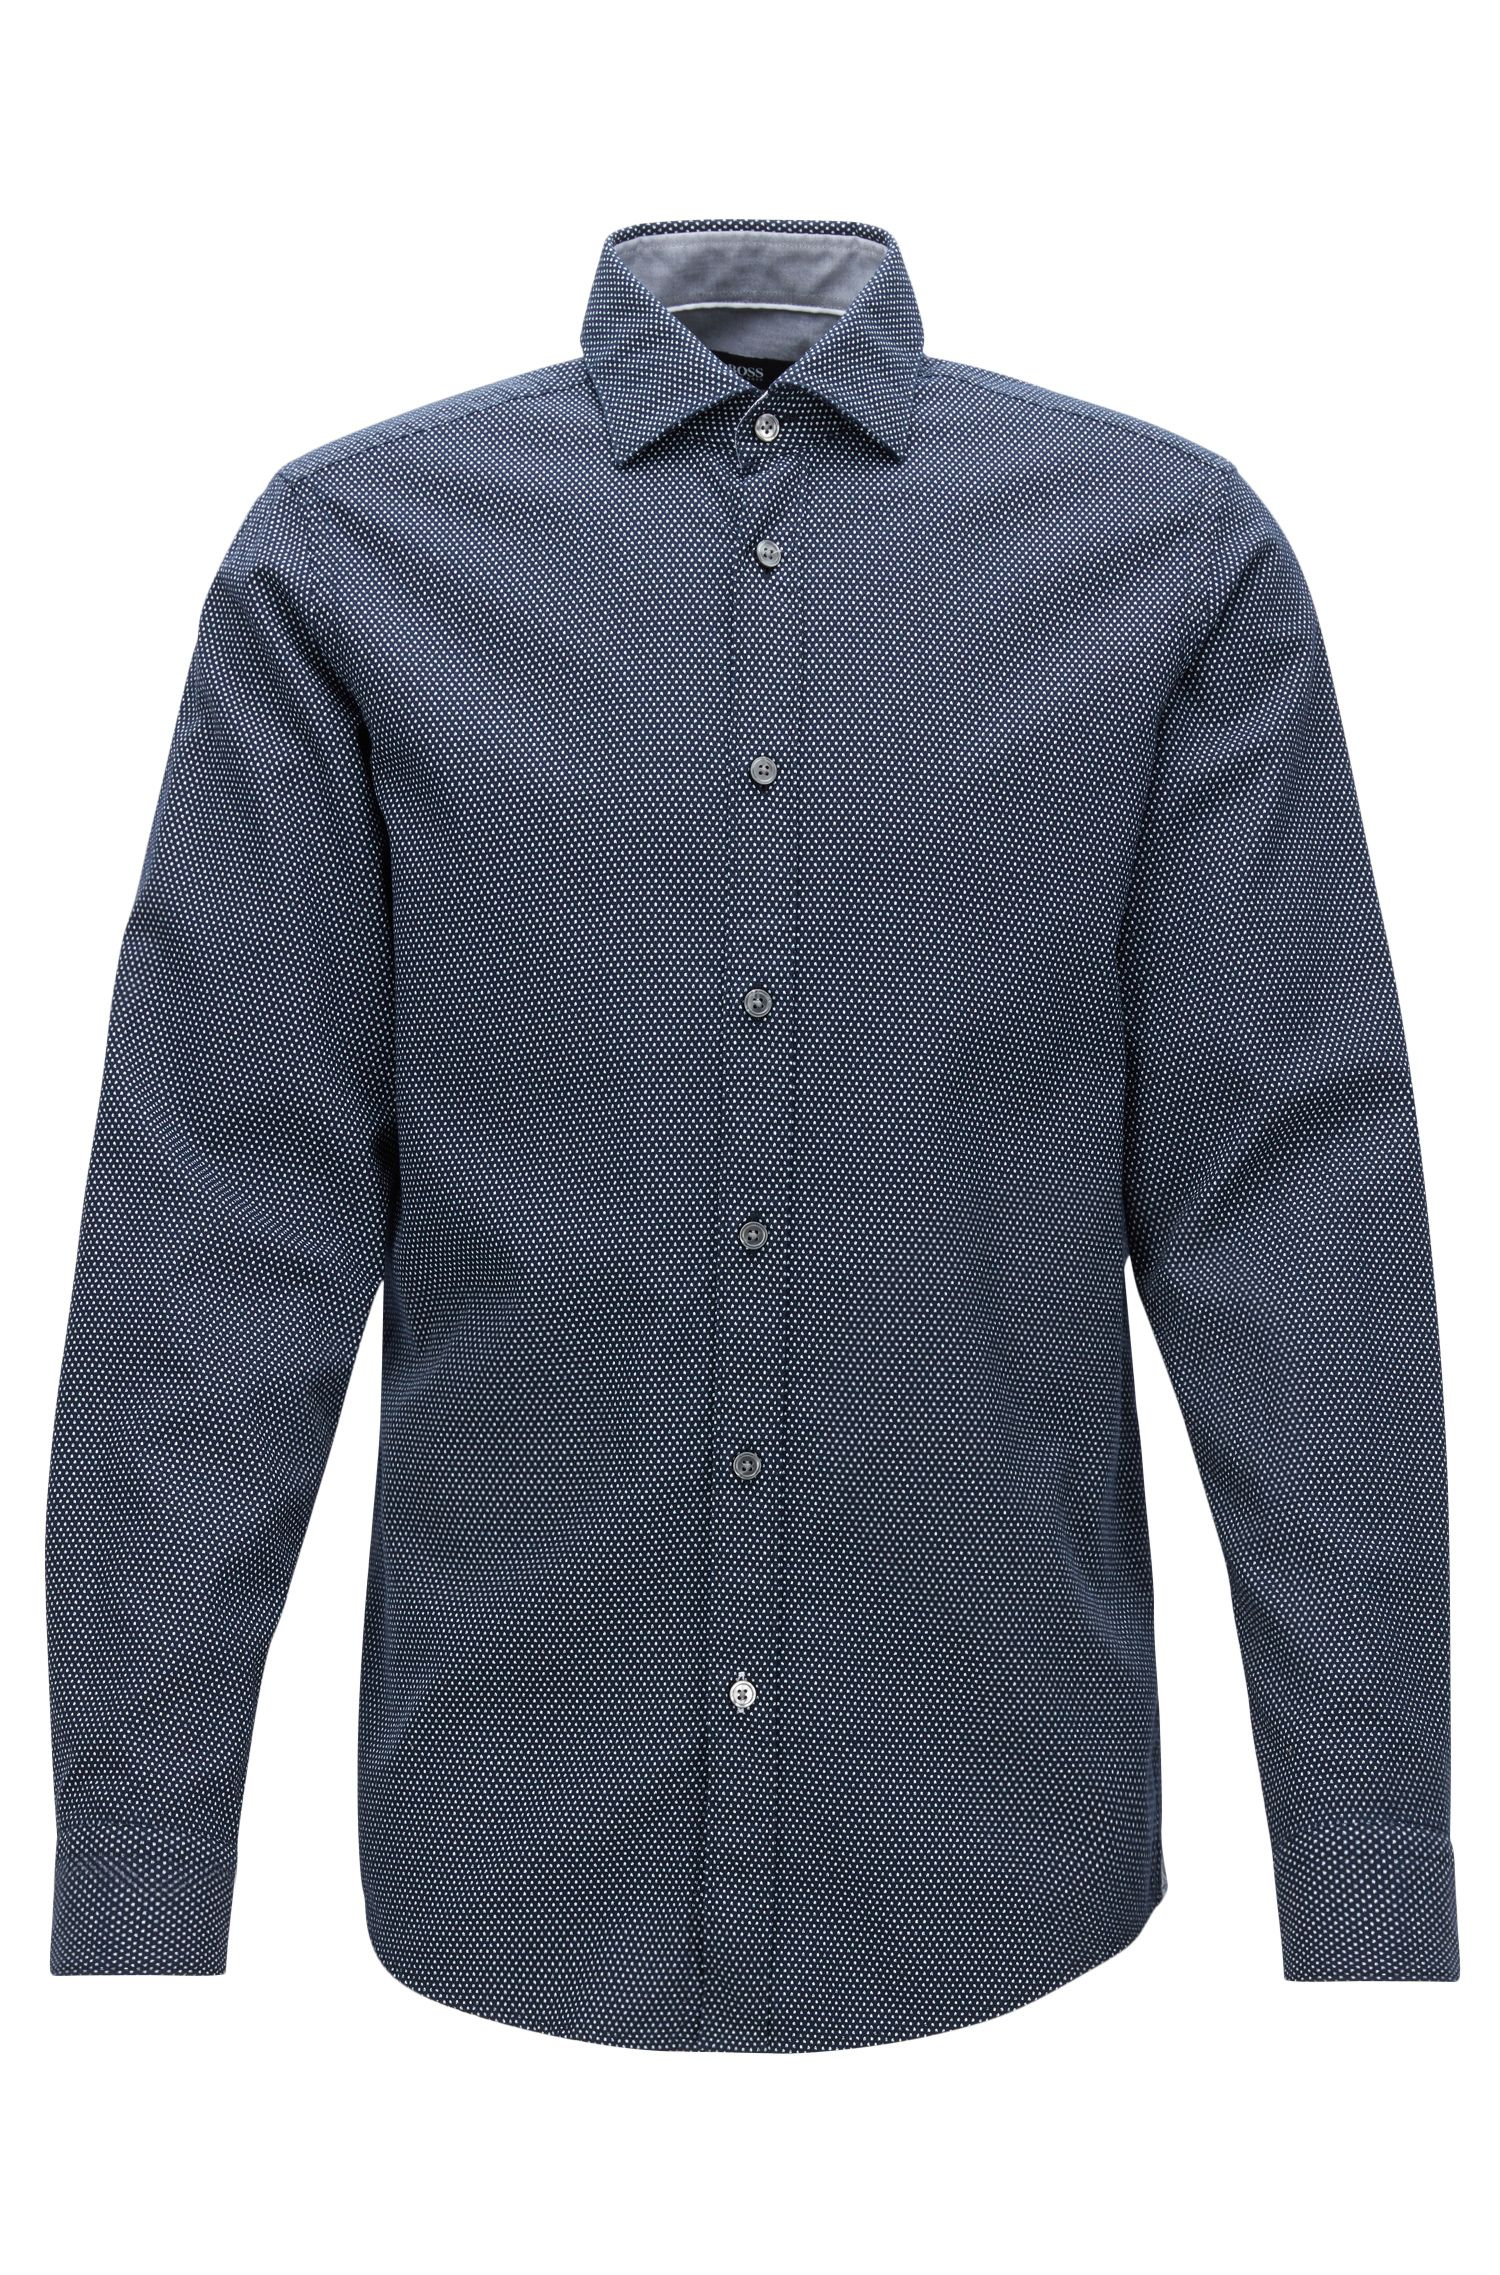 Camisa regular fit de algodón estampado